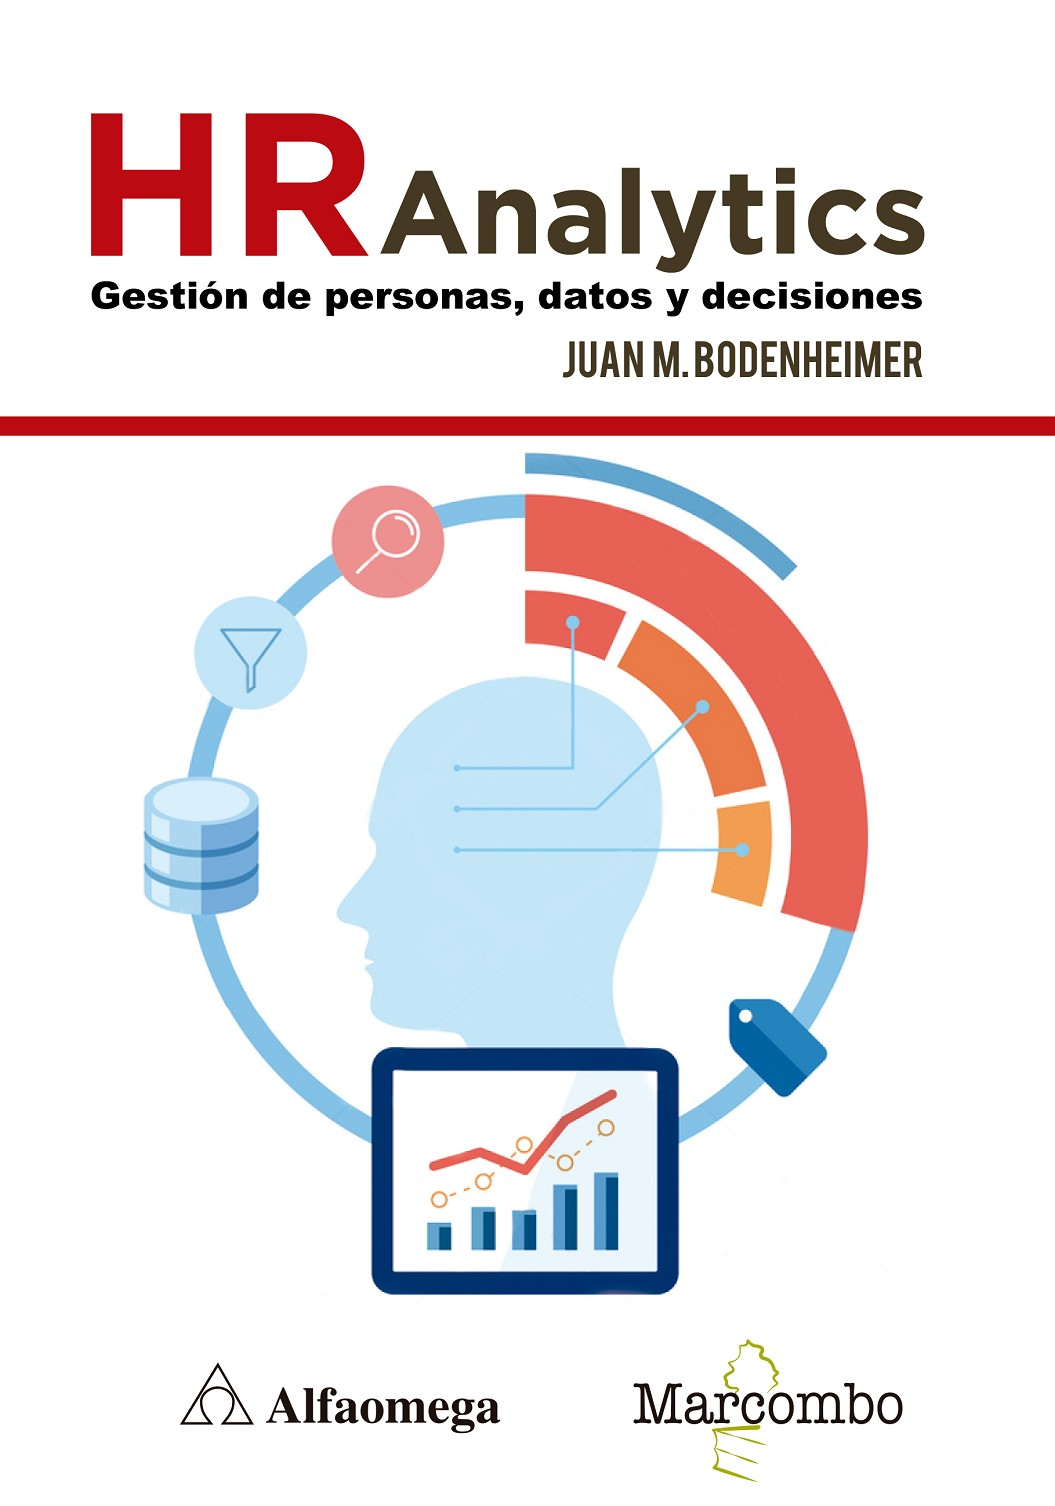 Hr analytics: gestión de personas, datos y decisiones